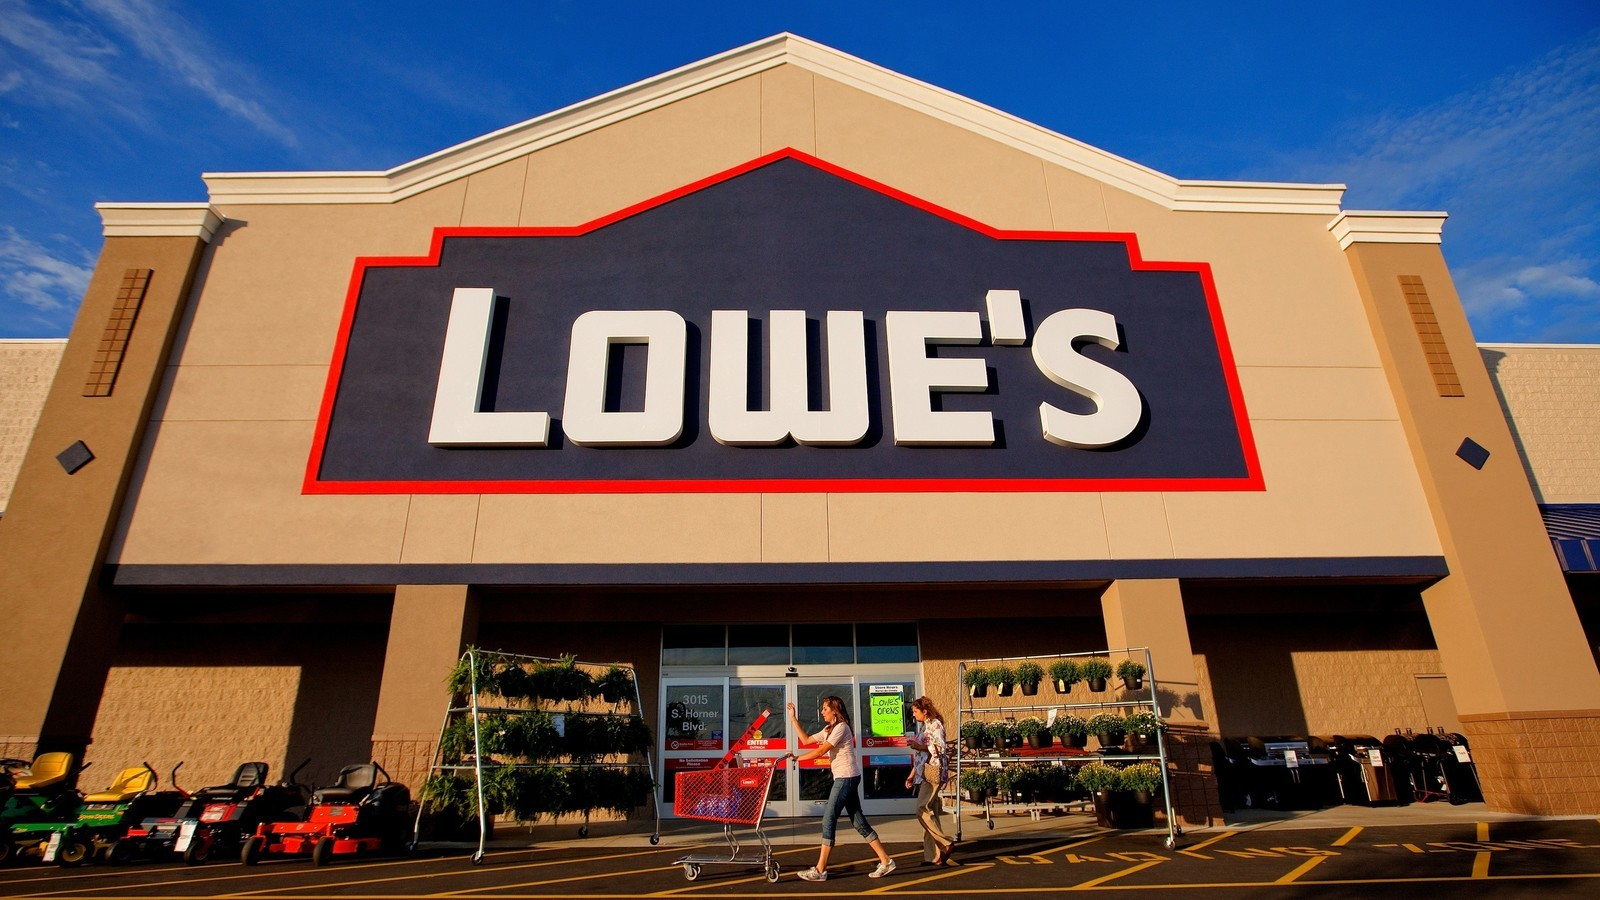 Lowe's Plans on Tapping Into Virtual Reality For Home Improvement Training